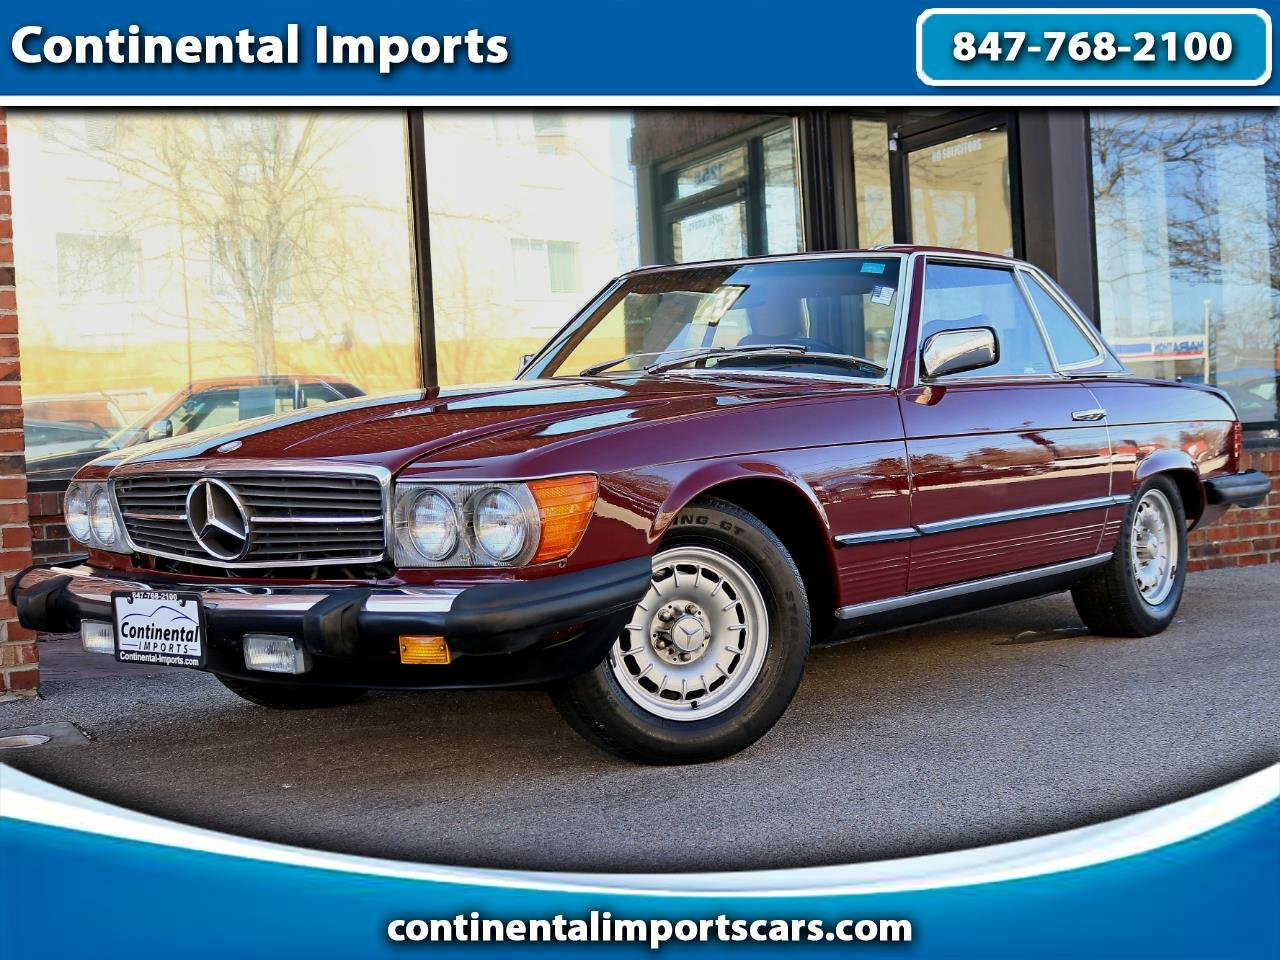 Mercedes-Benz 380 SL 1984